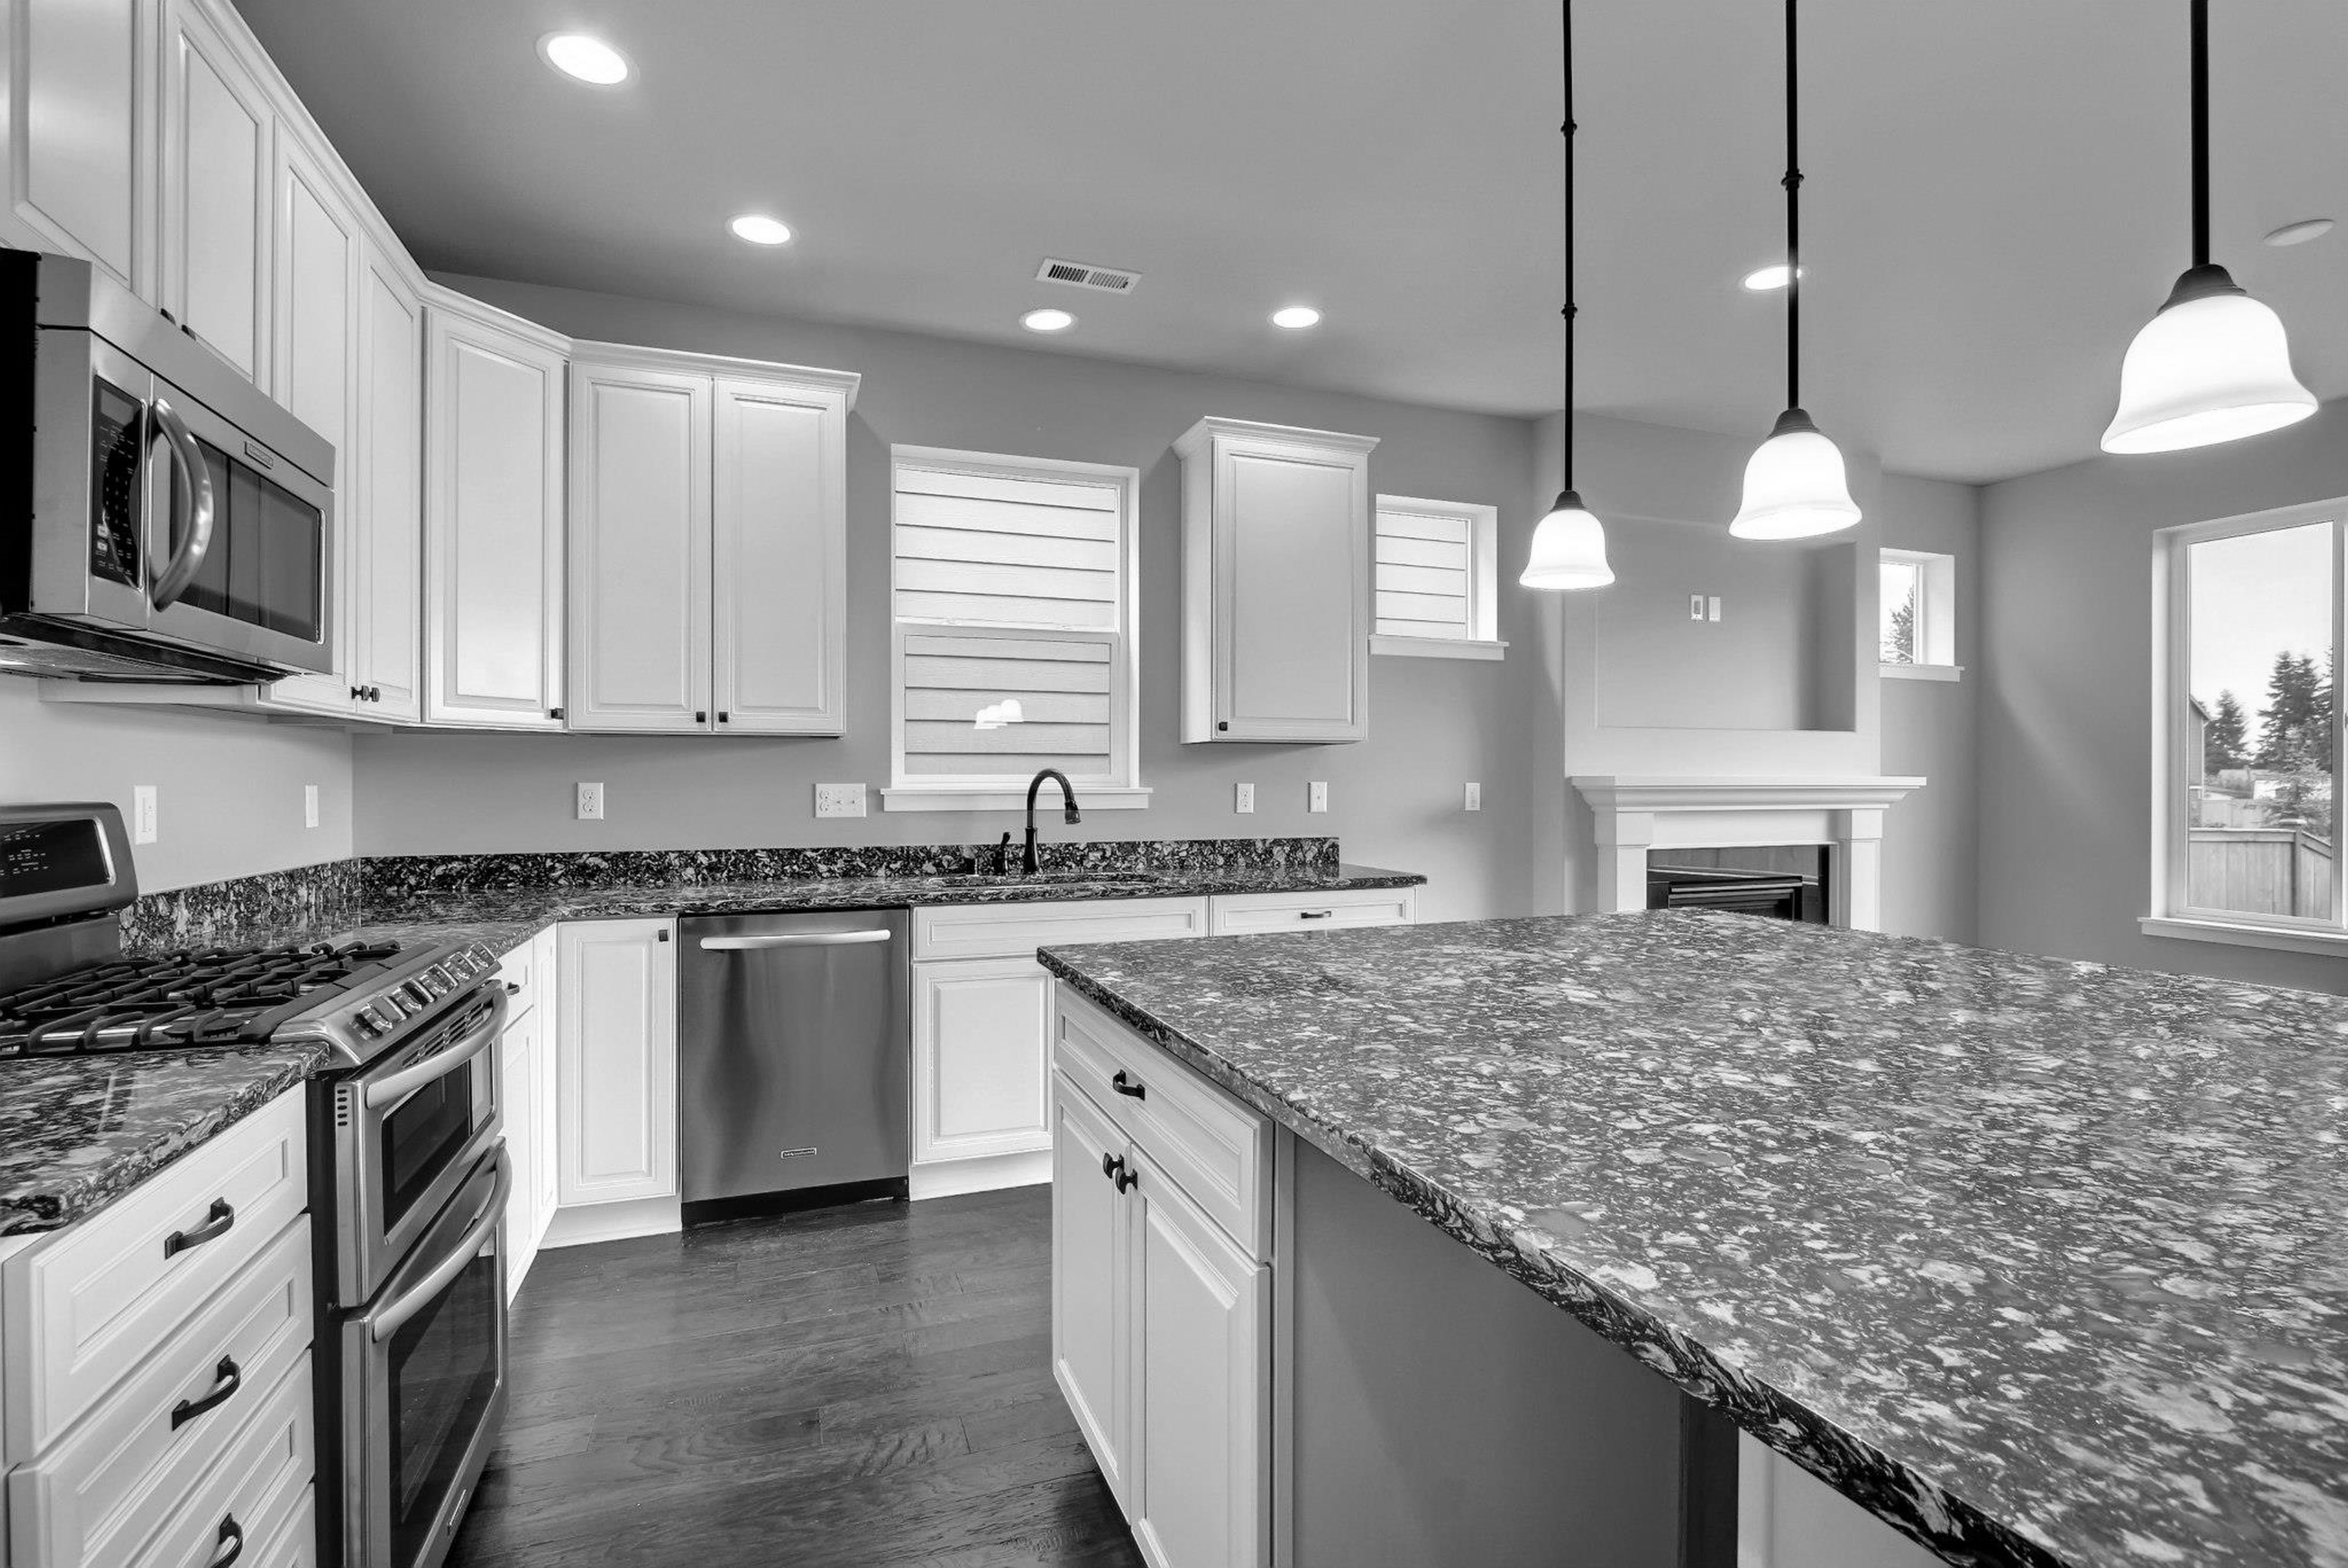 Kitchens With Gray Cabinets And Black Countertops Decorkeun